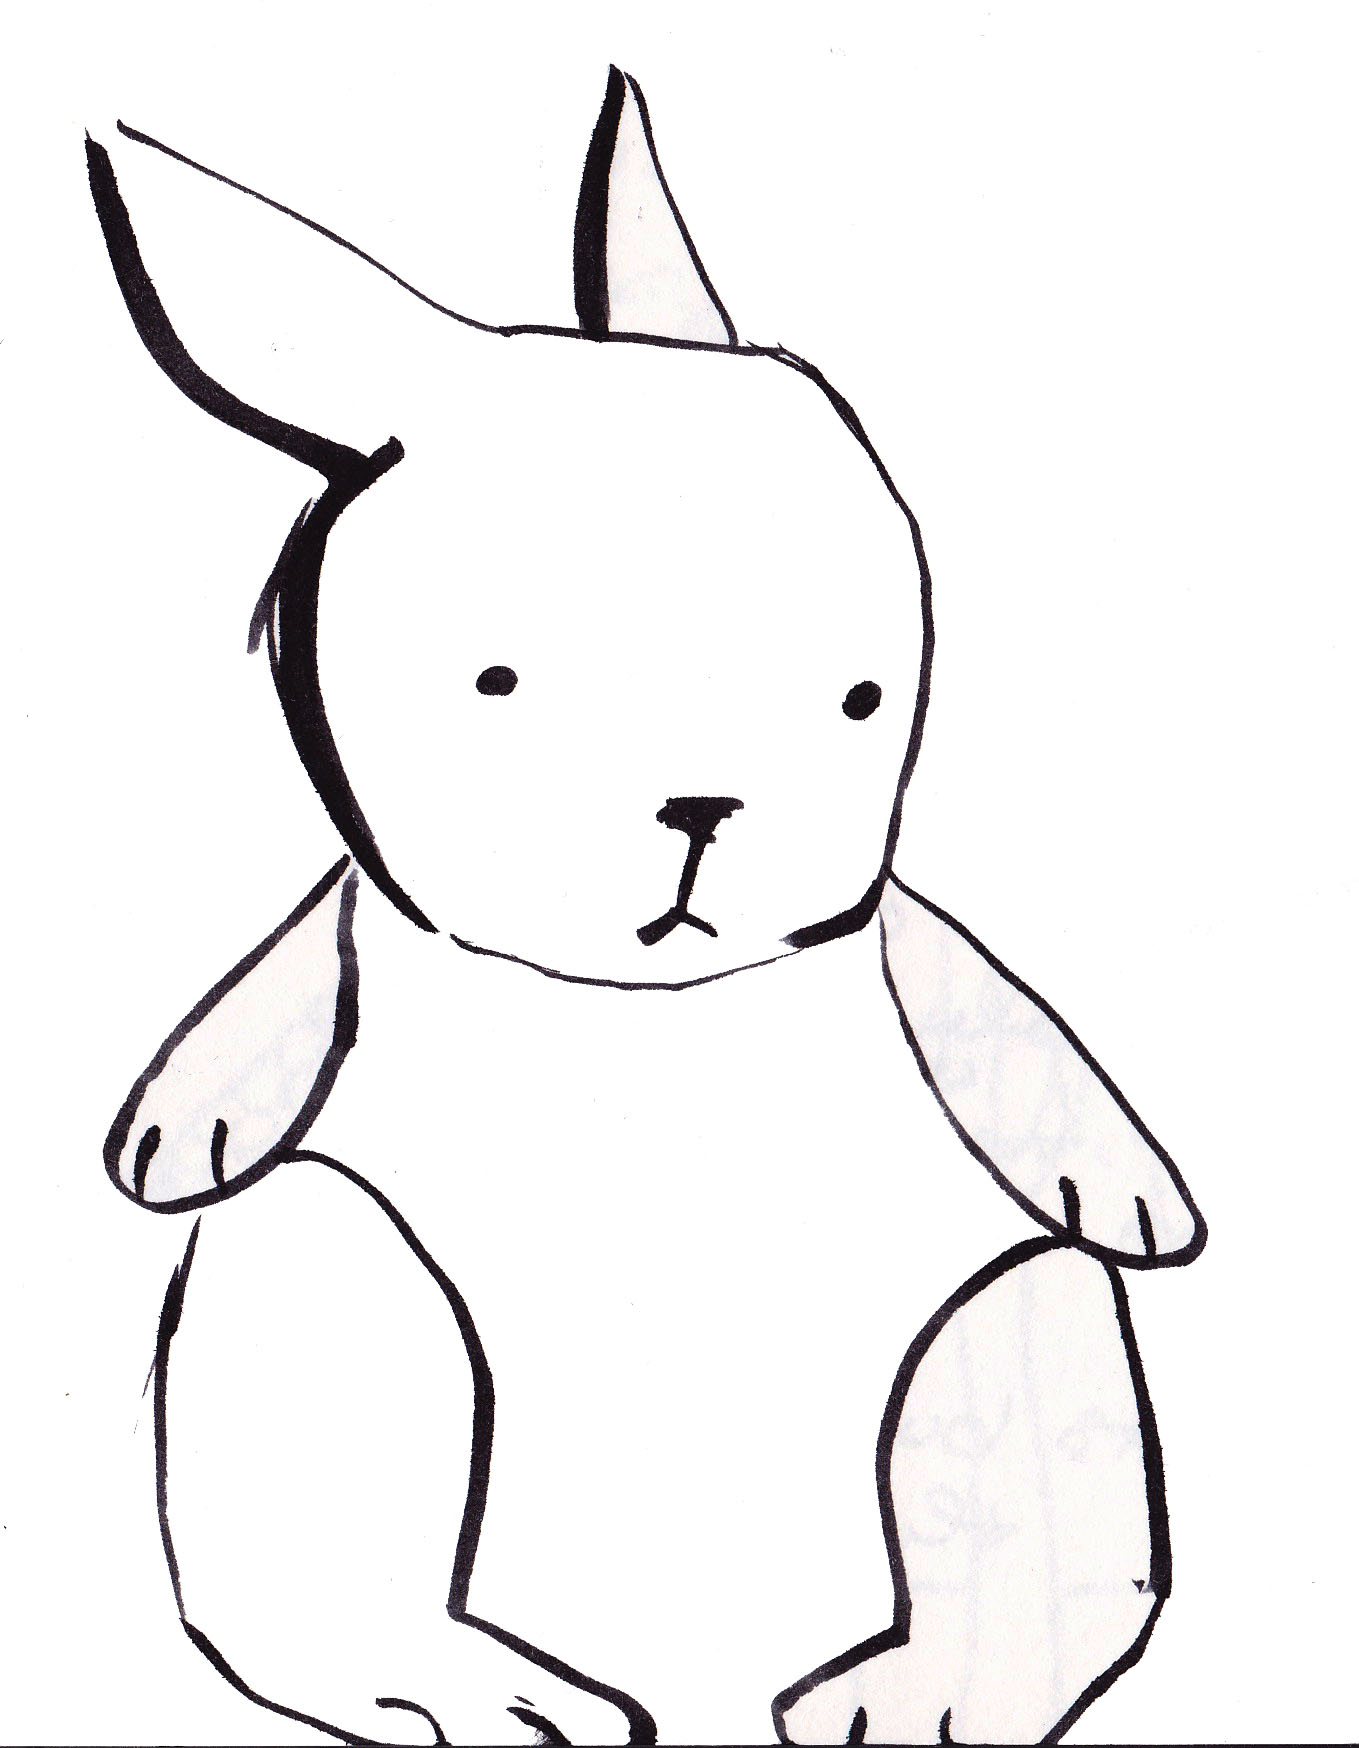 1359x1748 Simple Drawing Of A Bunny Simple Line Drawing Rabbit Mimi's Room